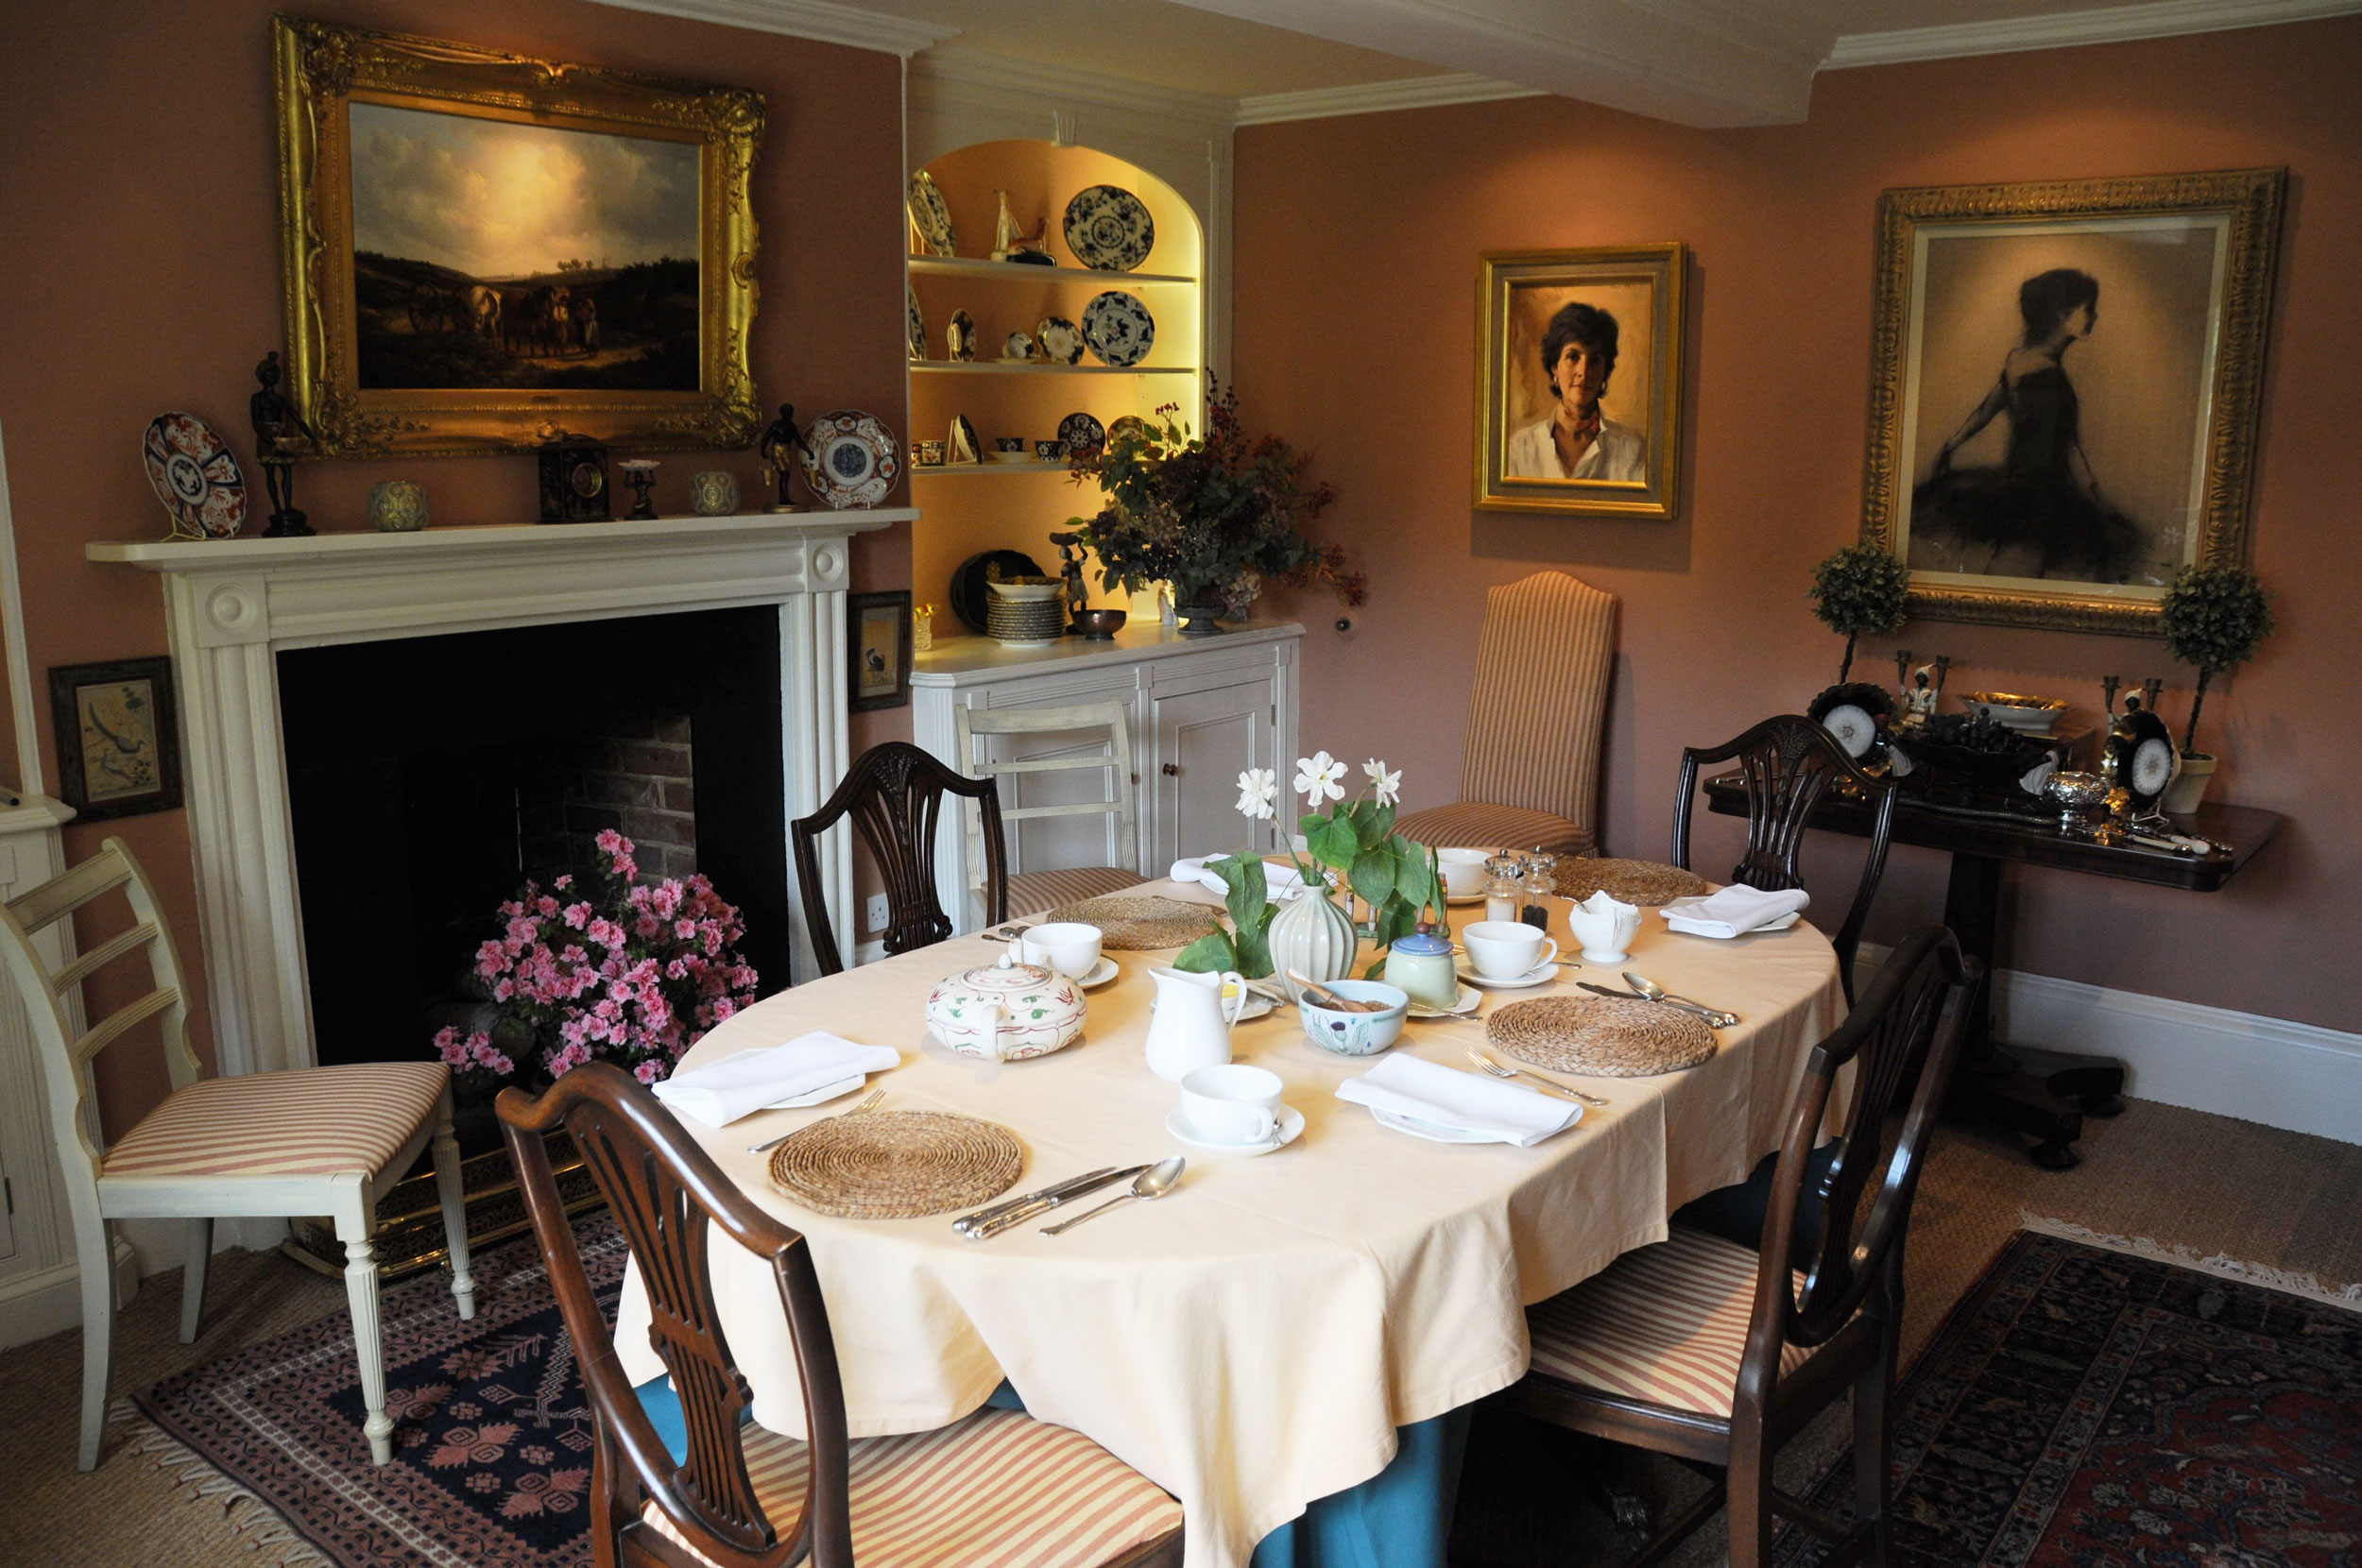 BREAKFAST - Delicious, hearty breakfasts are served in the family's elegant Dining Room at the front of the main house. Eggs, bacon and sausages from the farm are cooked on the Aga and served alongside homemade jams and compotes made with garden fruits.